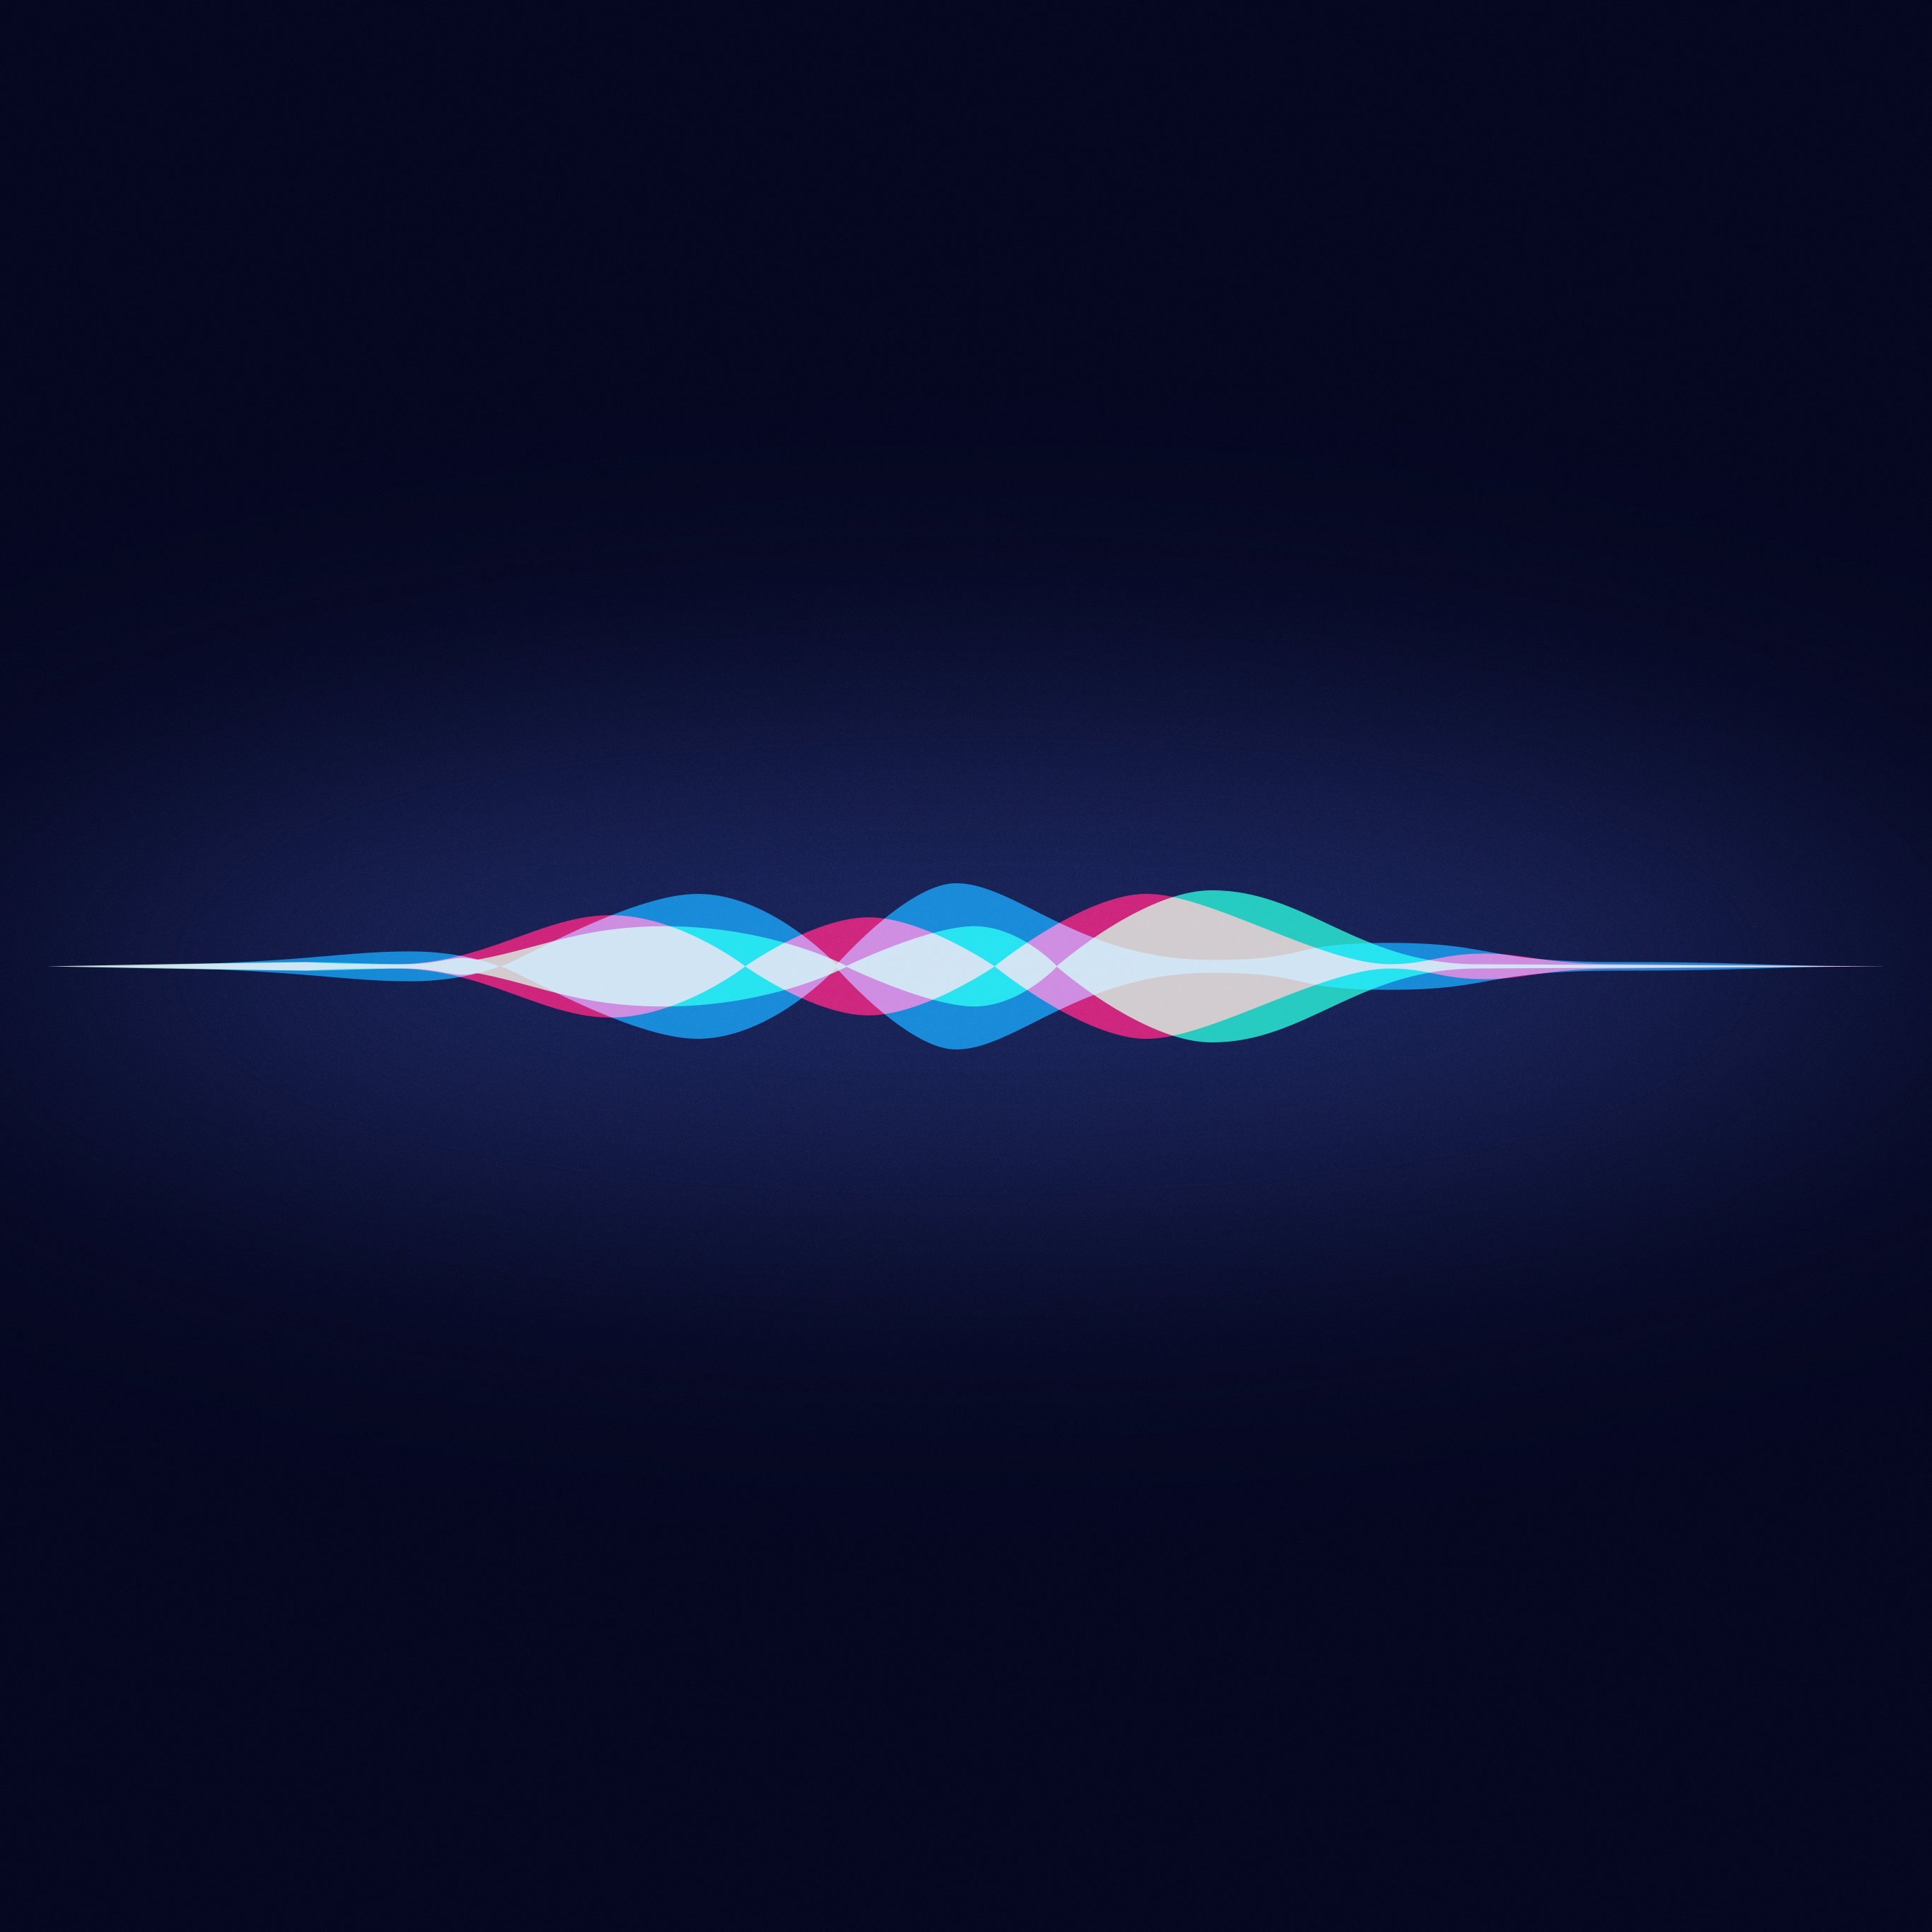 Wallpapers of the week Hey Siri and Apple TV 2732x2732